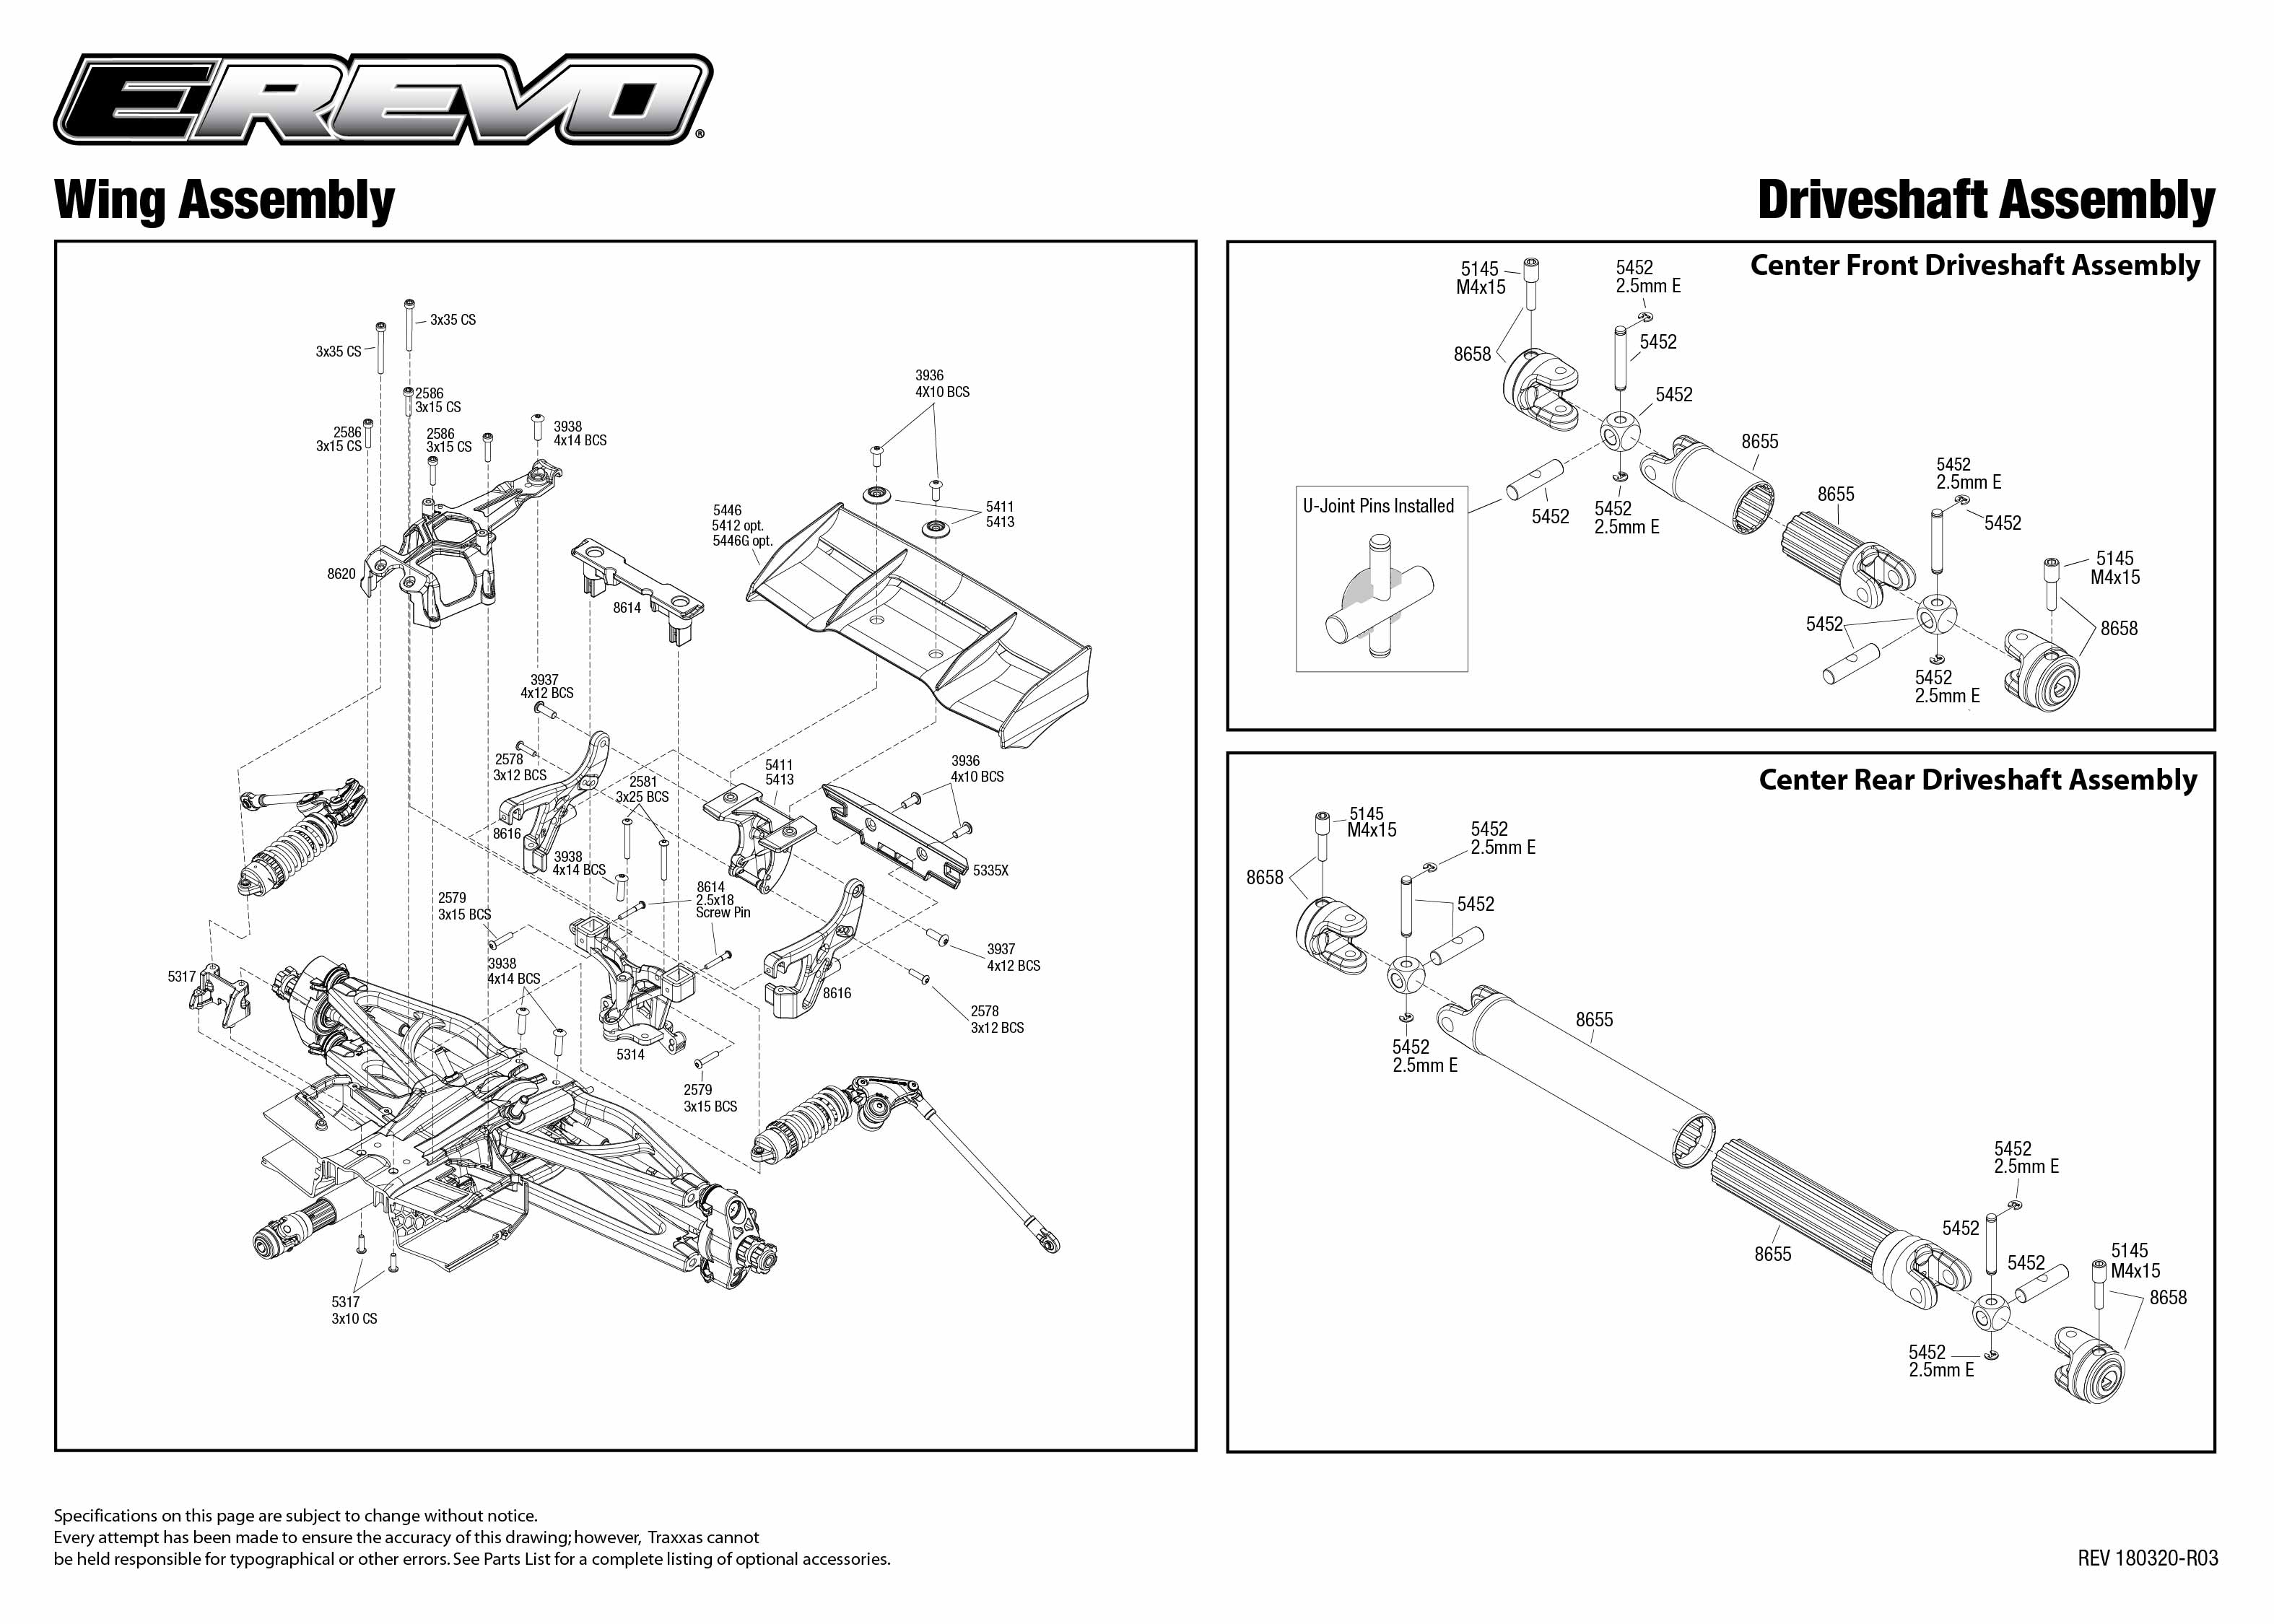 Driveshafts Assembly Exploded View